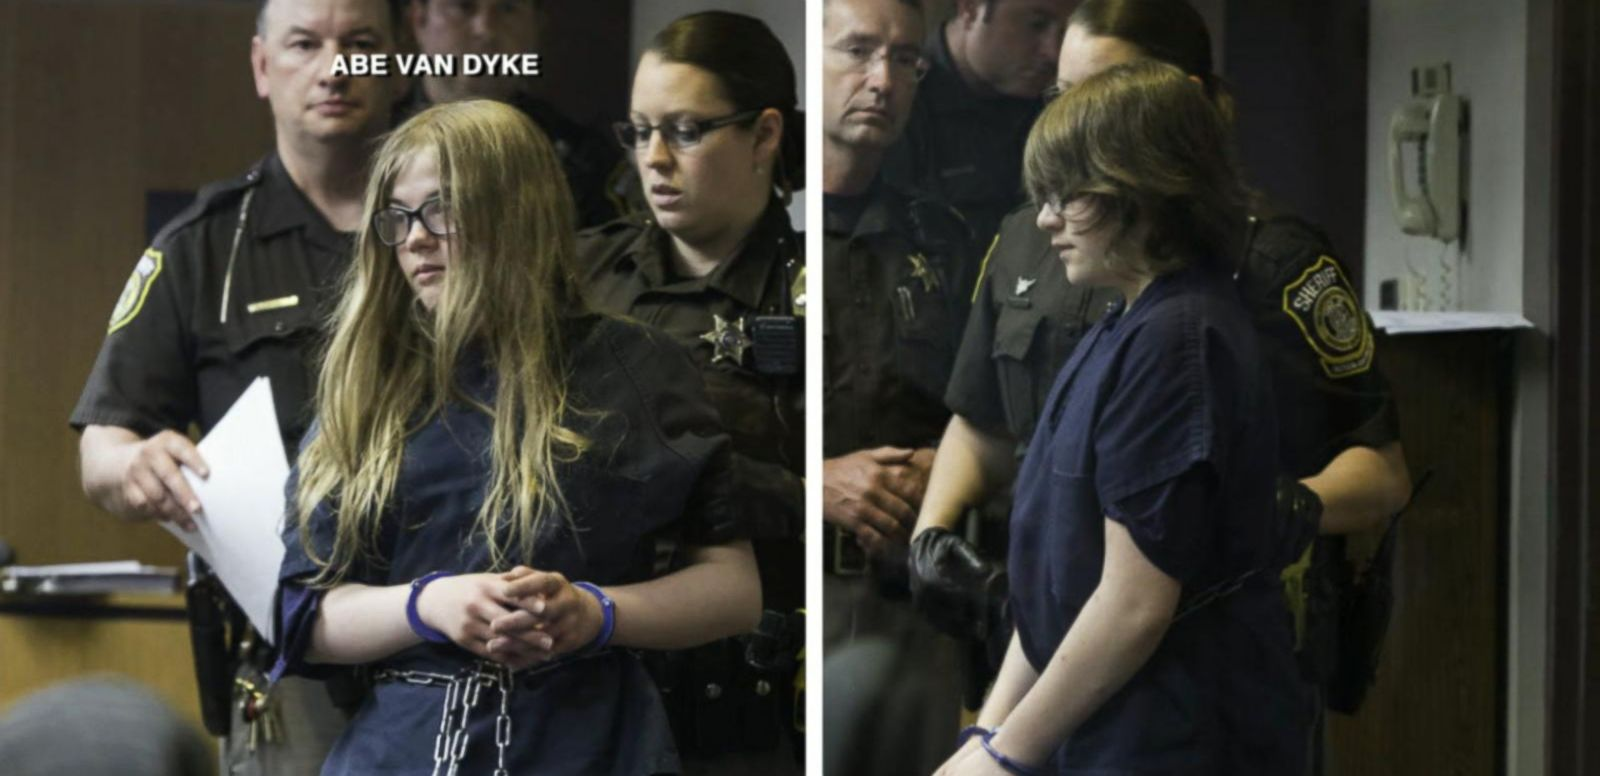 VIDEO: Slender Man Stabbing Suspects Ruled Competent to Stand Trial